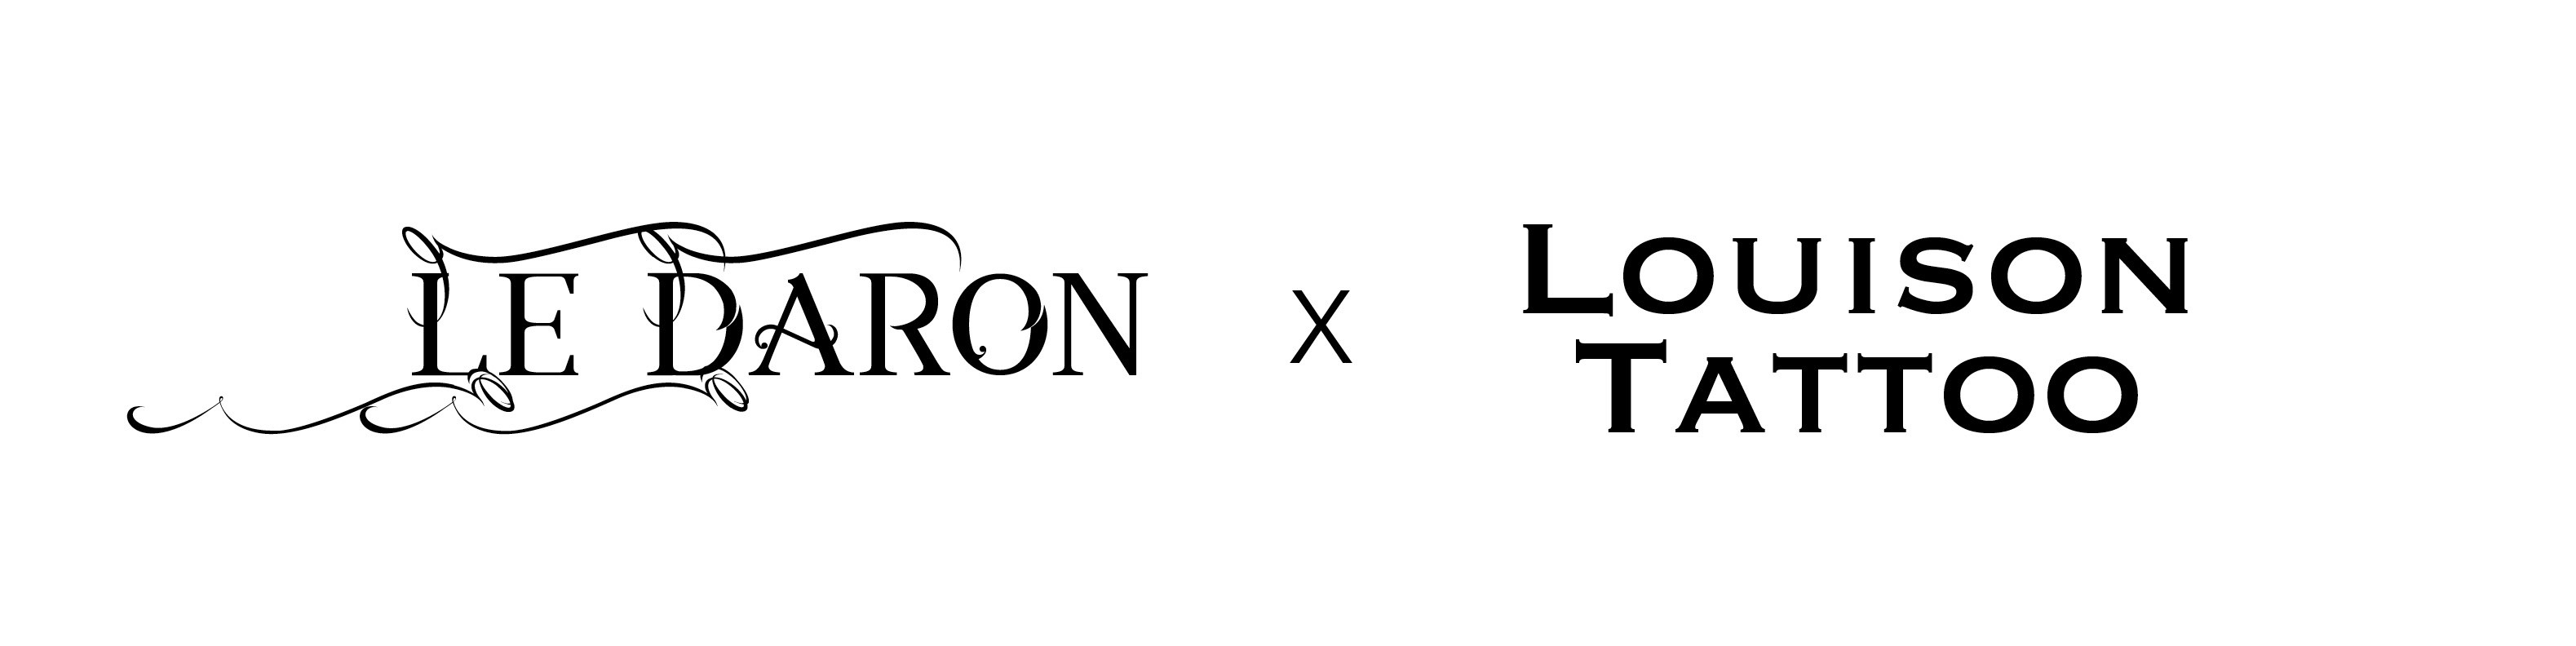 LE DARON x Louison Tattoo